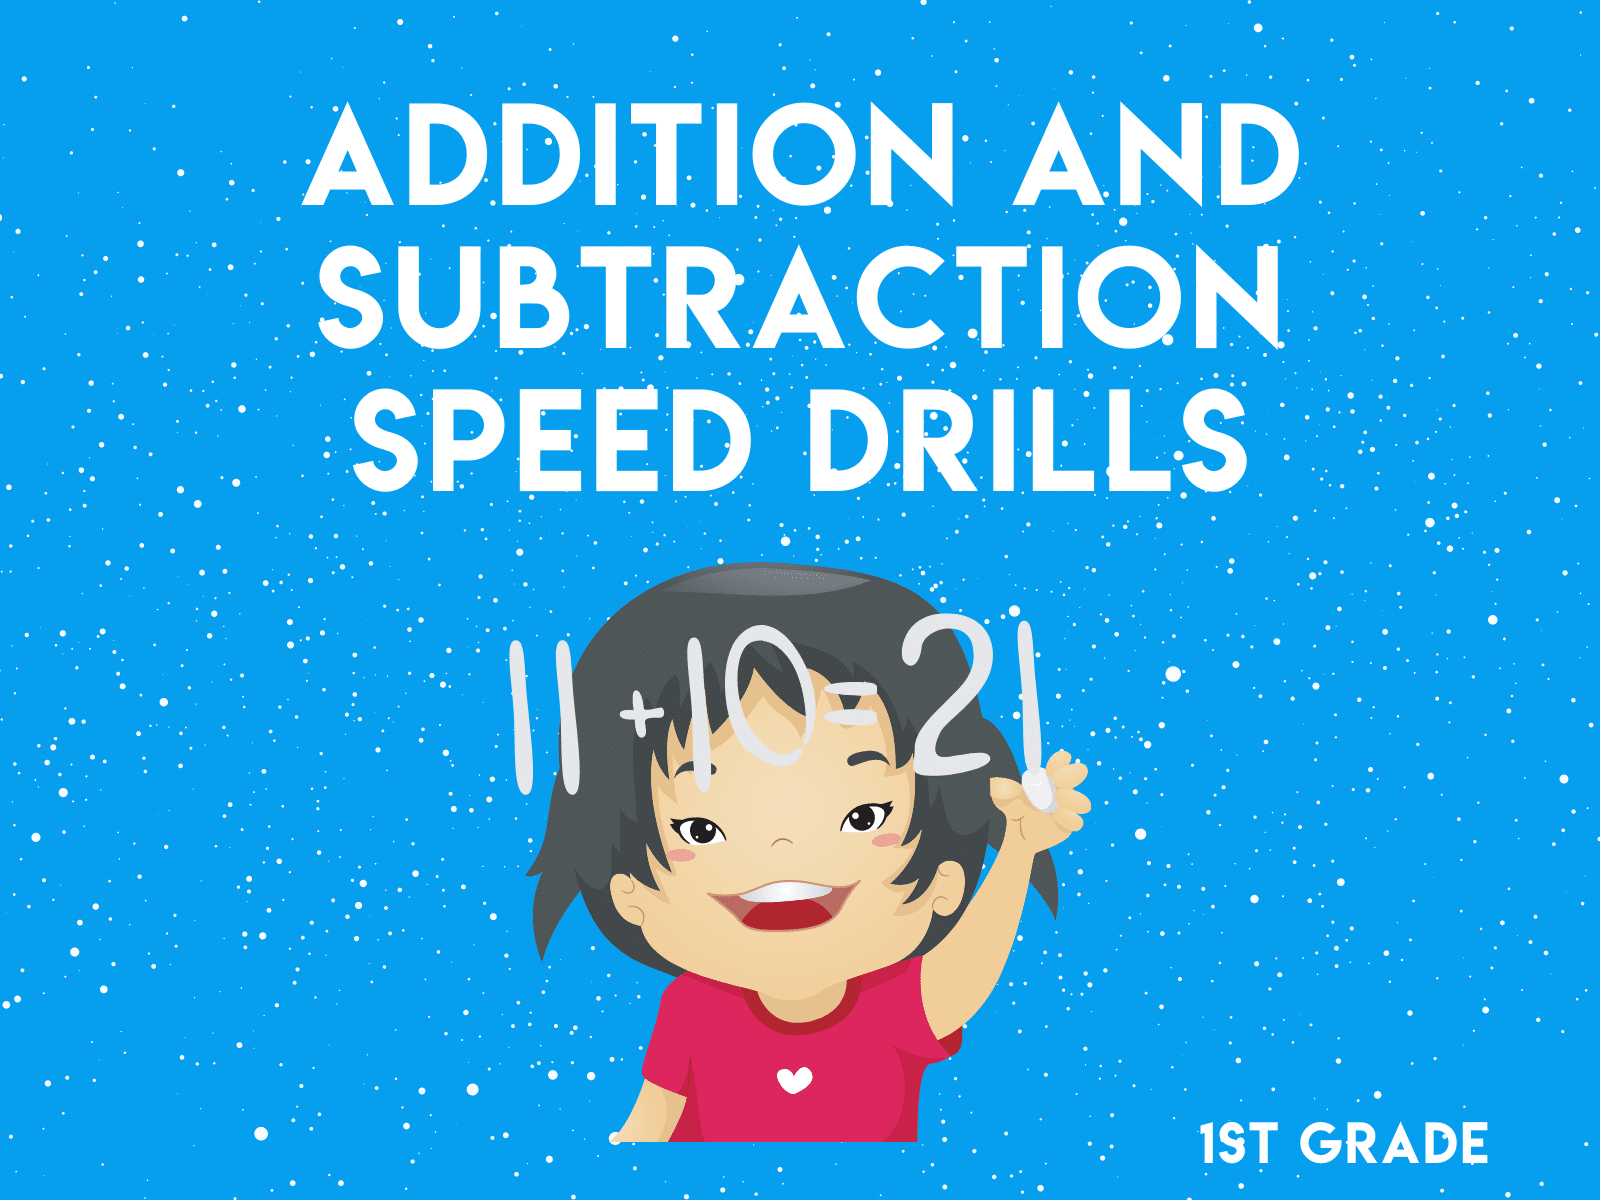 Addition and subtraction speed drill free worksheet for first grade.